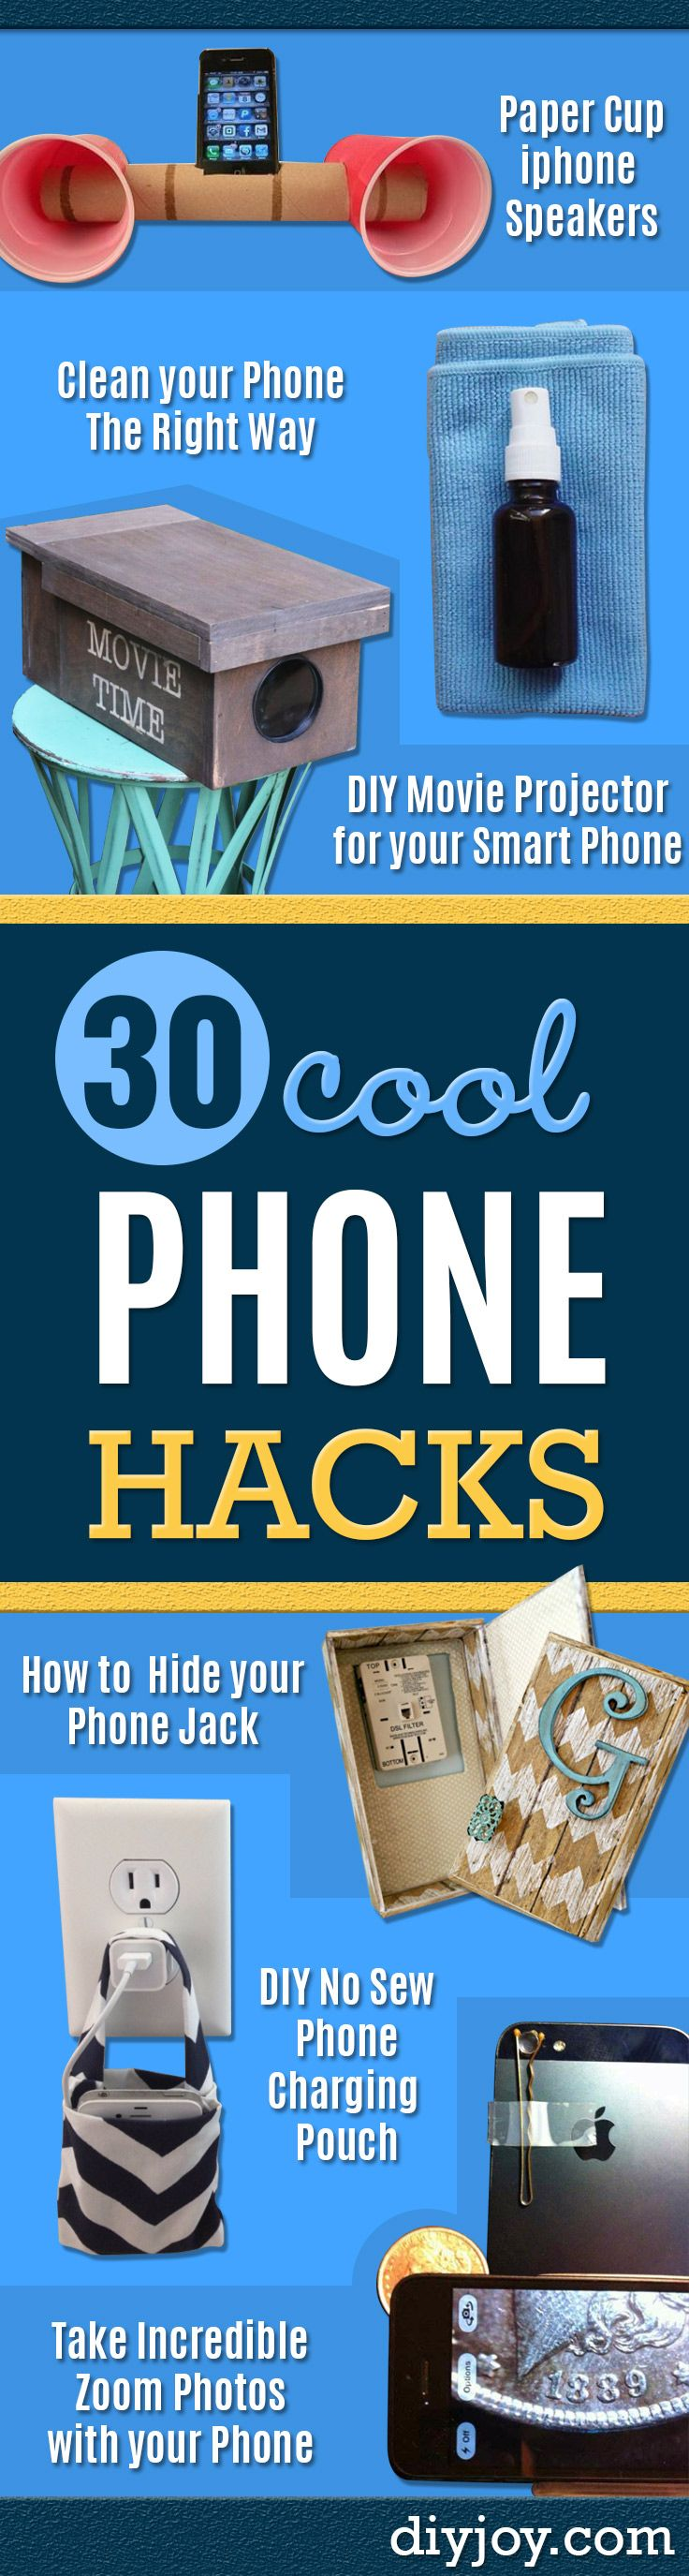 25 best ideas about iphone life hacks on pinterest iphone hacks best life hacks and life. Black Bedroom Furniture Sets. Home Design Ideas